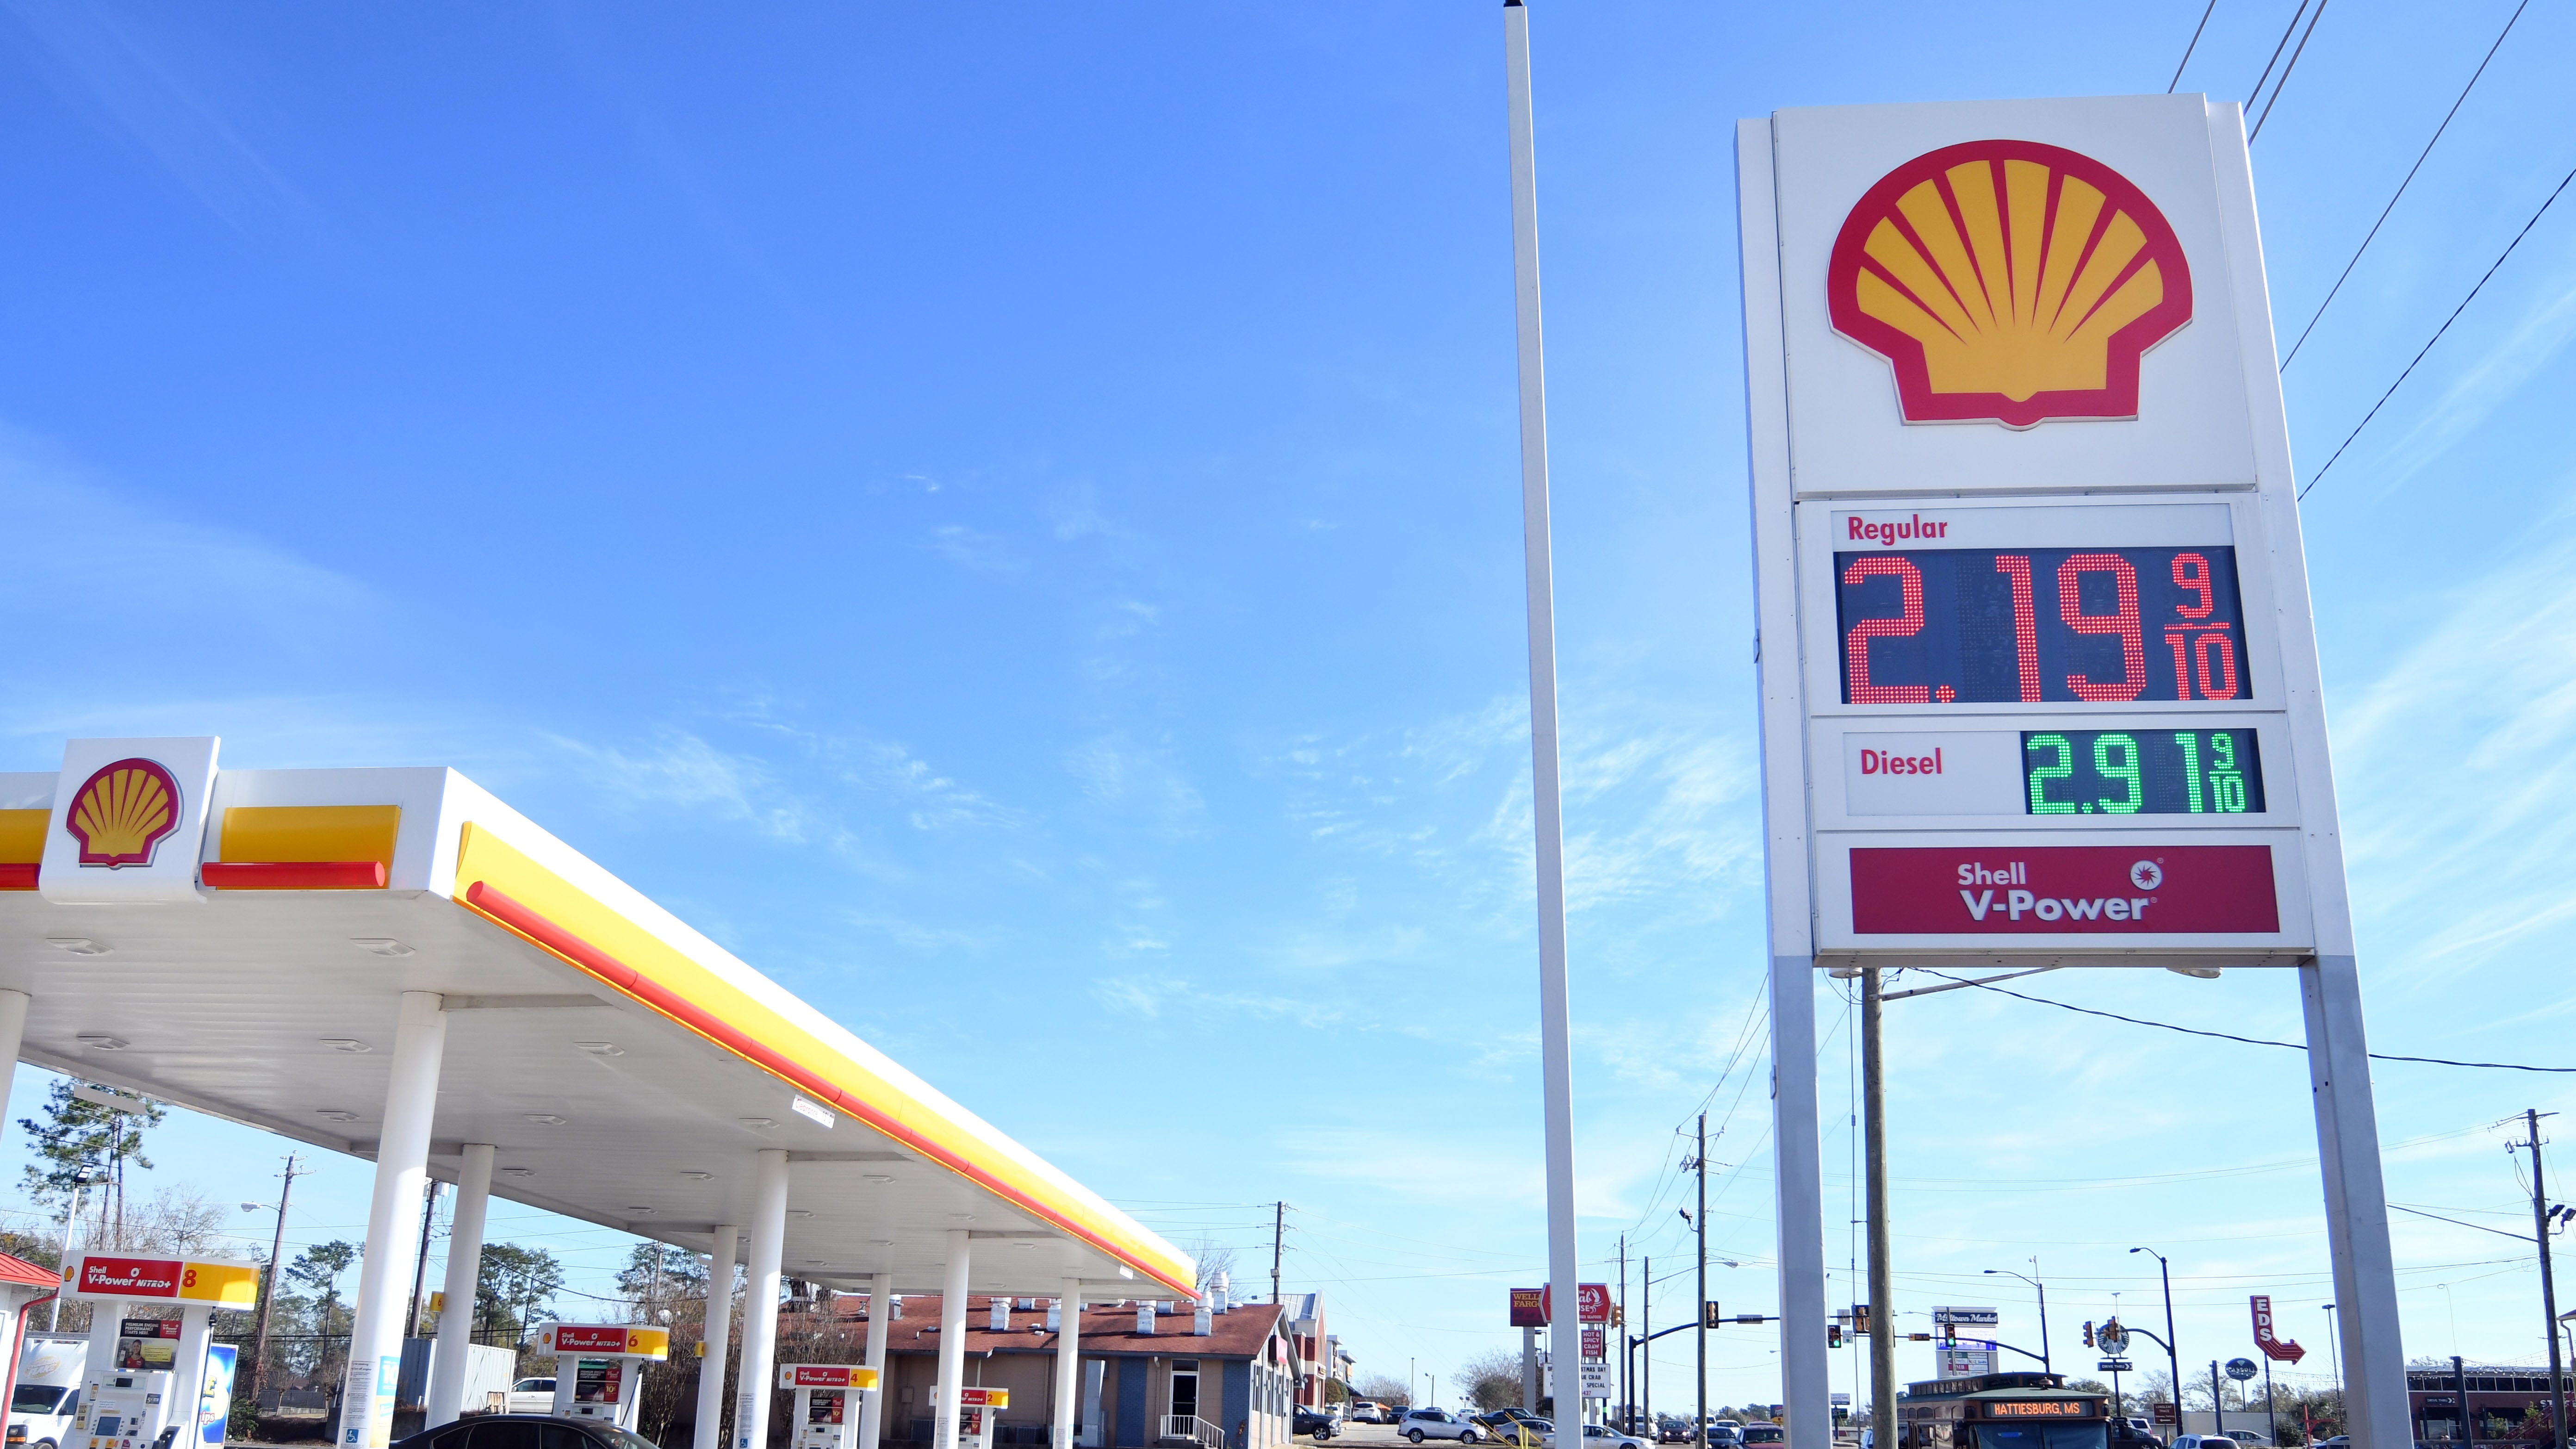 Hattiesburg gas prices are hovering above $2 per gallon for regular gasoline while the rest of the state has seen prices below $2 for at least a month.